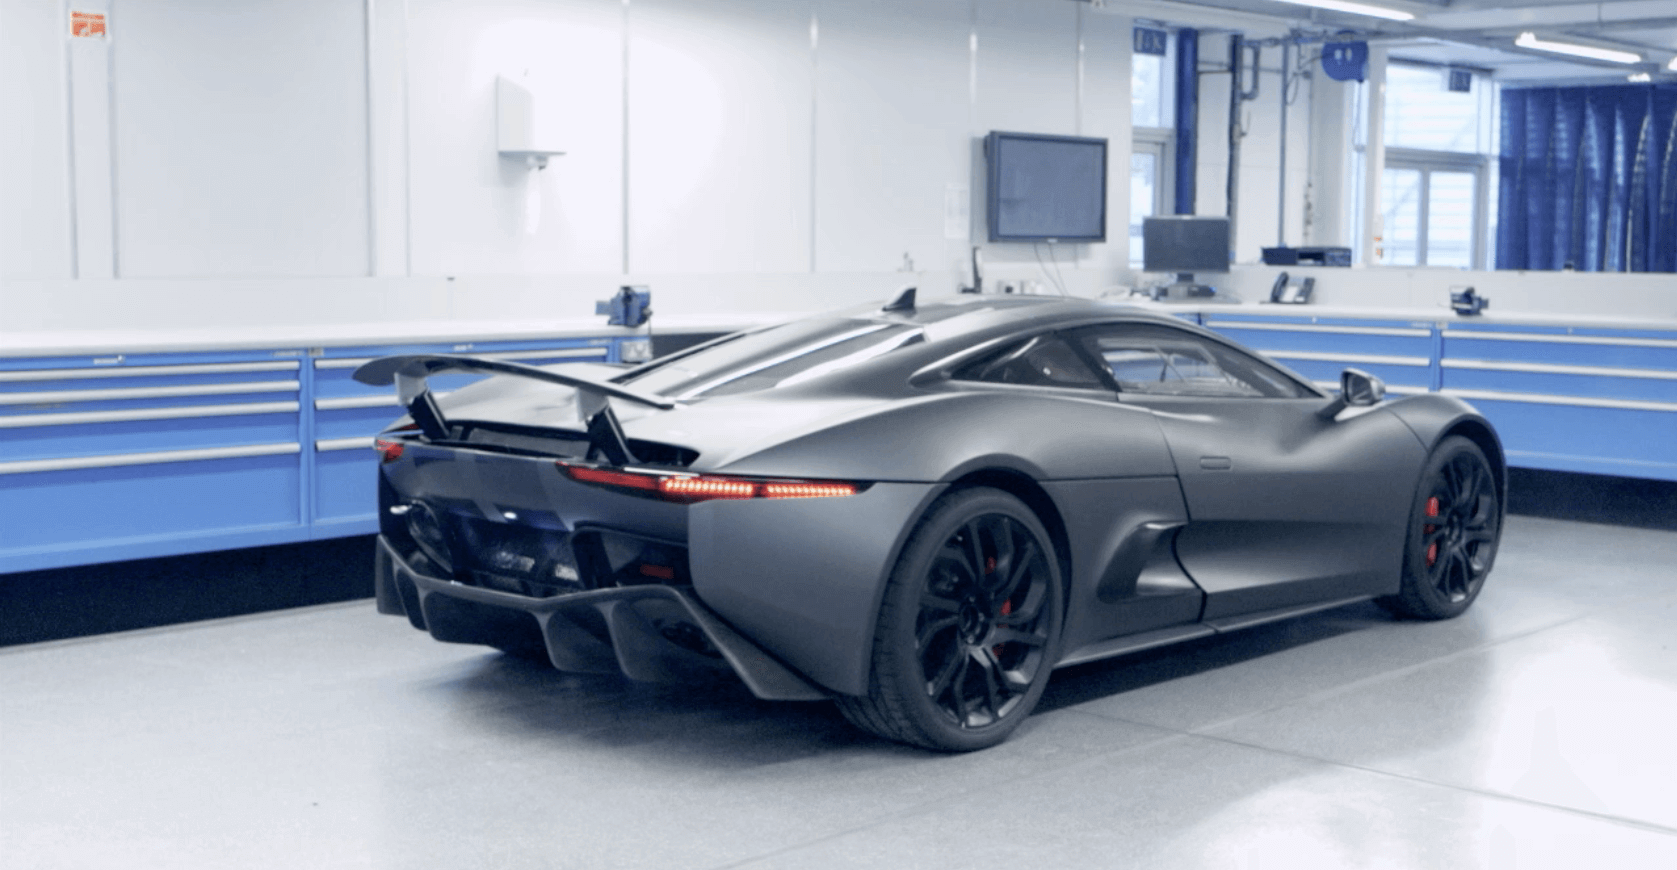 Jaguar c x75 a technological pioneer jaguar cx 75 publicscrutiny Image collections